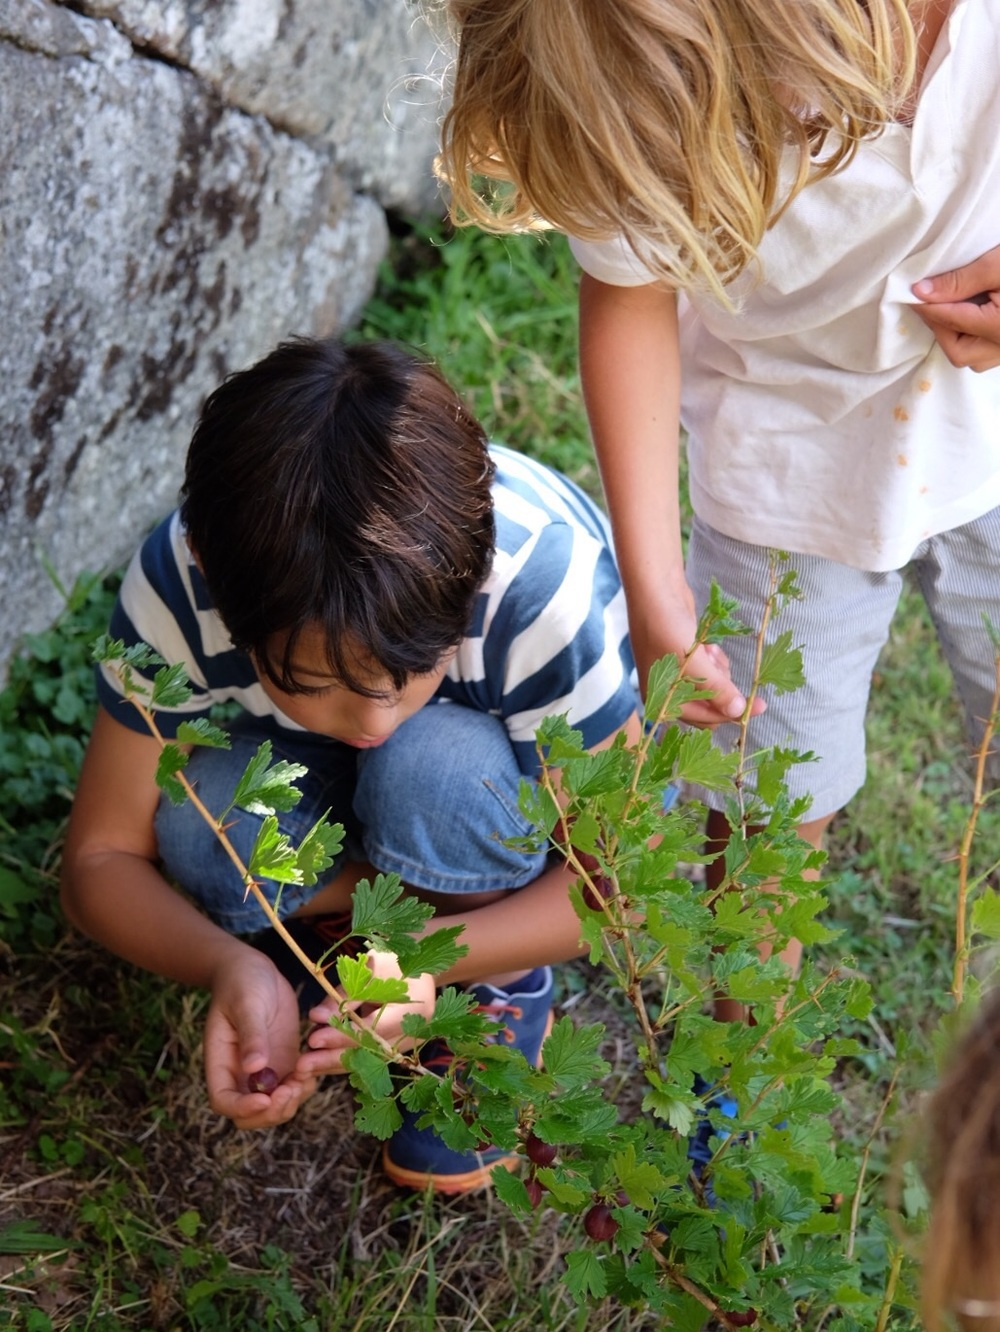 Picking berries is a fun activity!